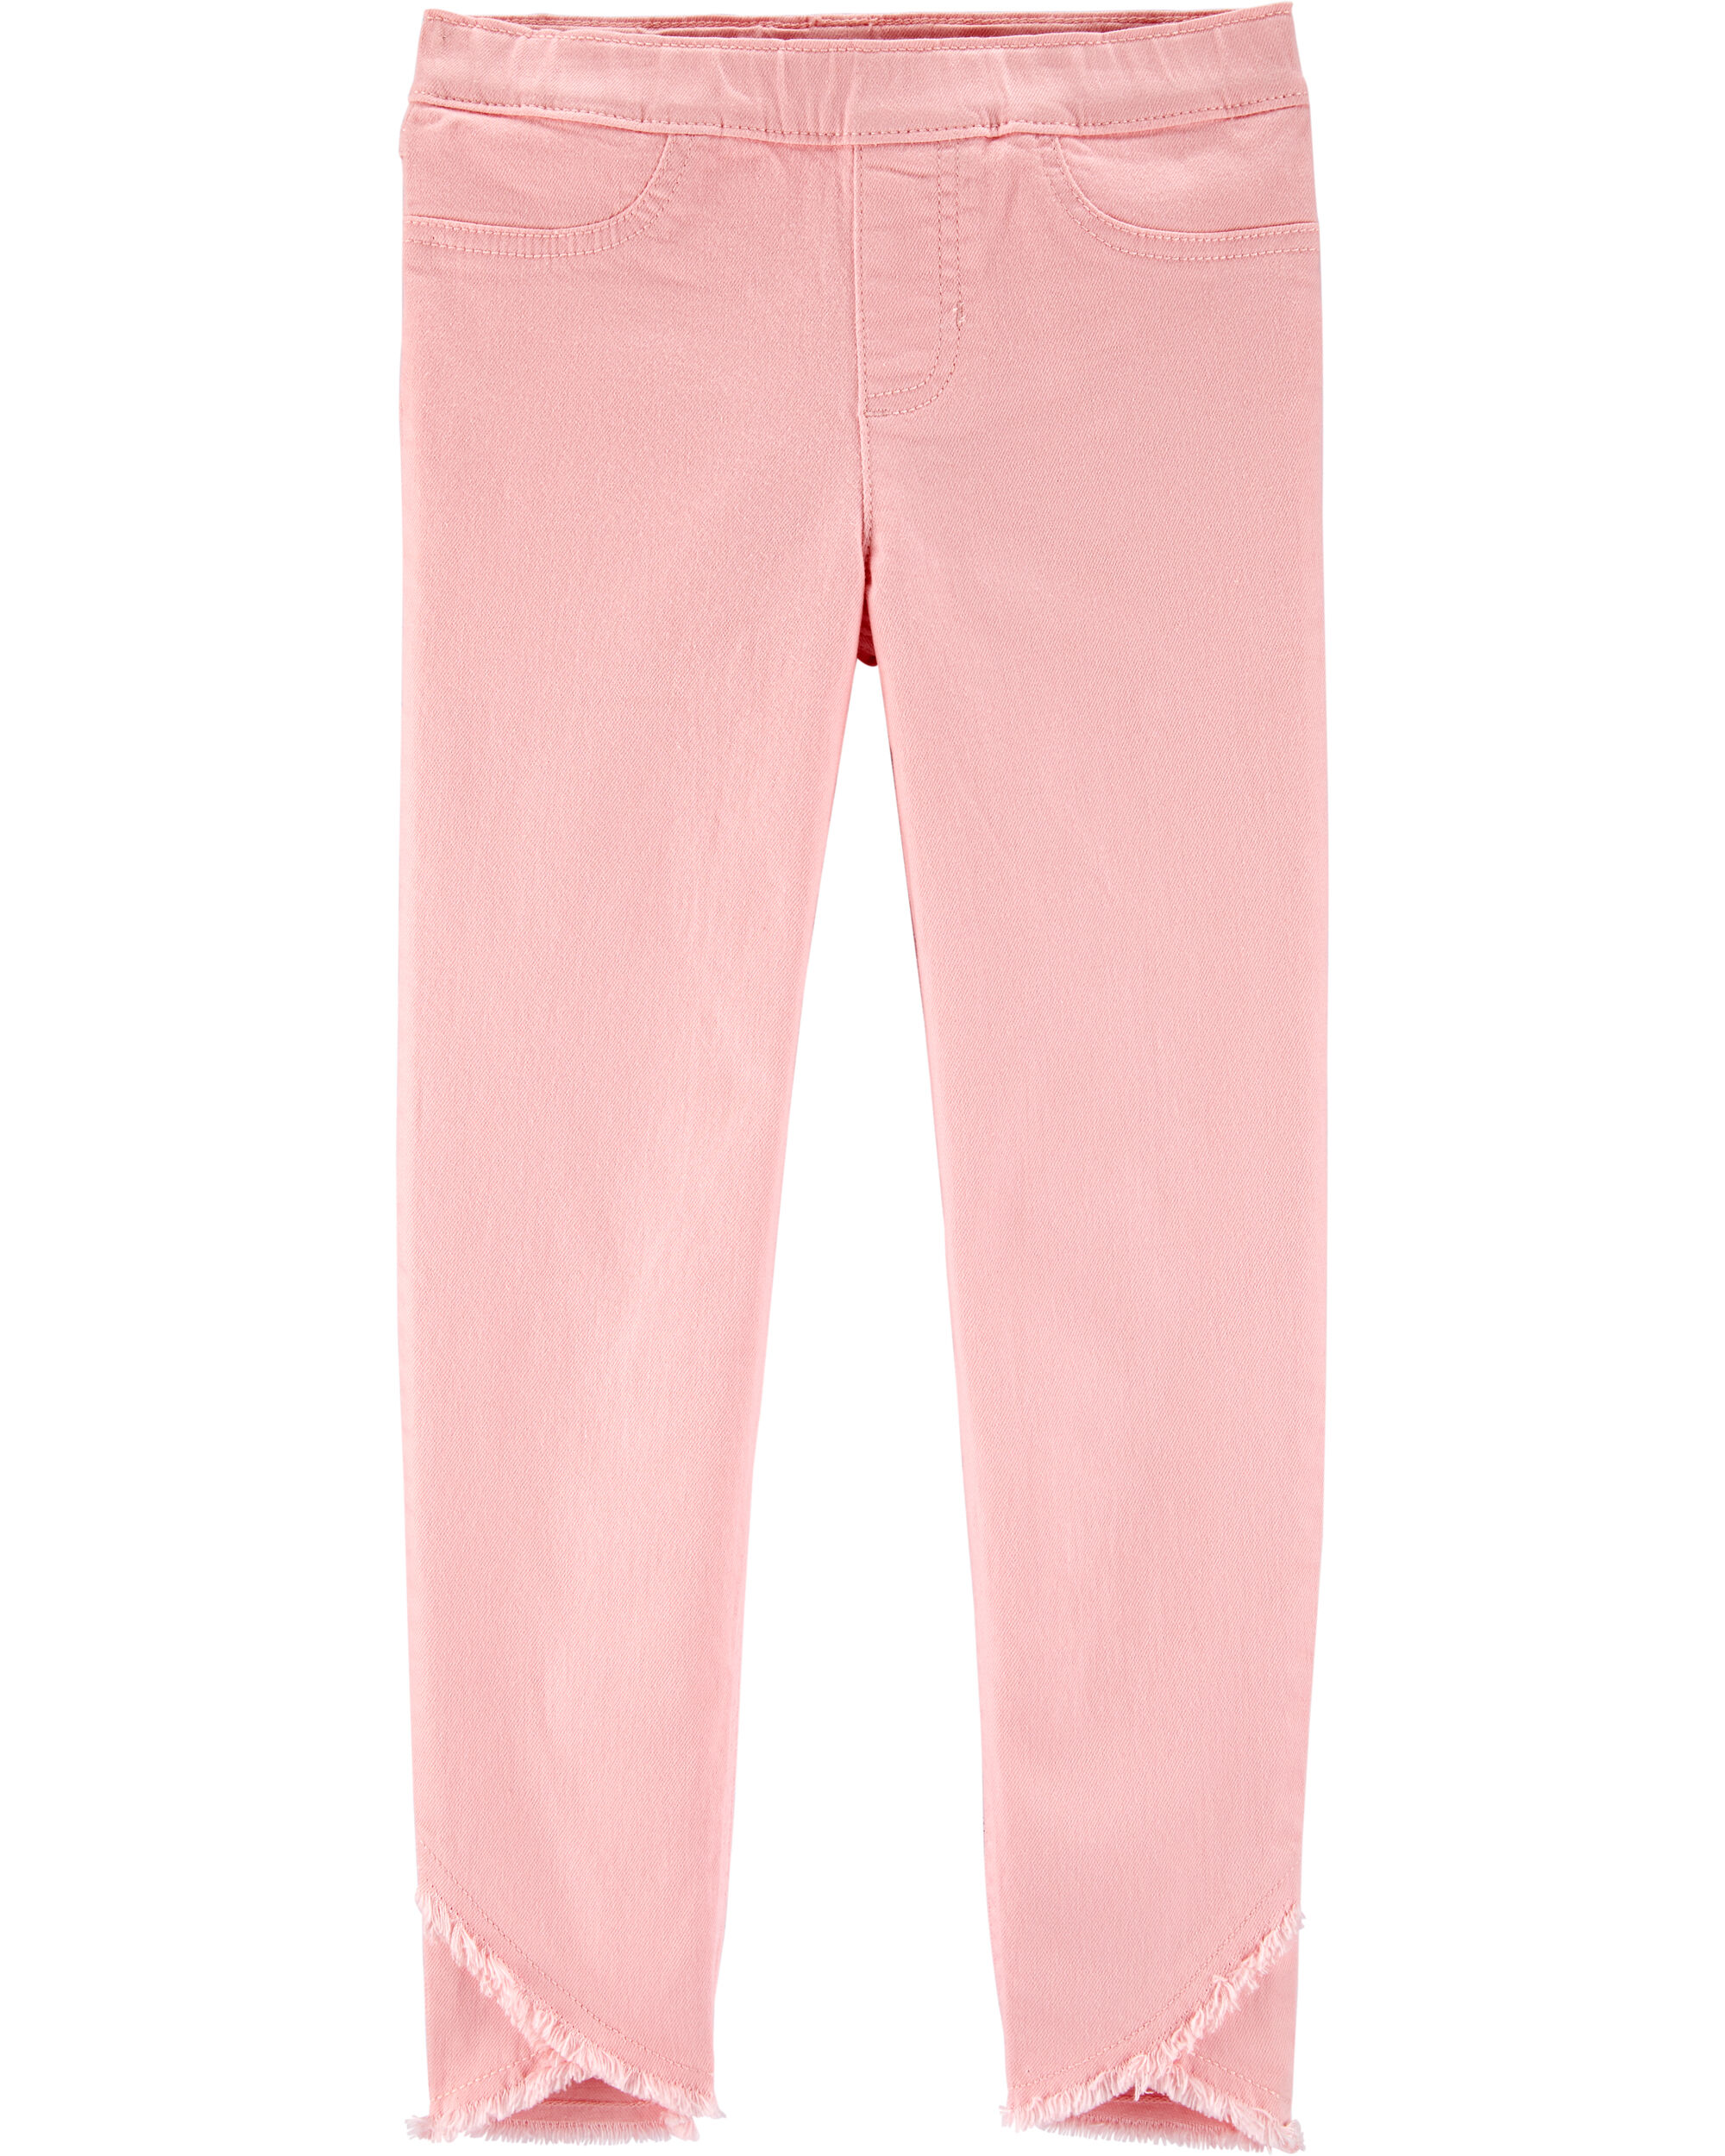 *Clearance*  Pull-On Frayed Jeggings